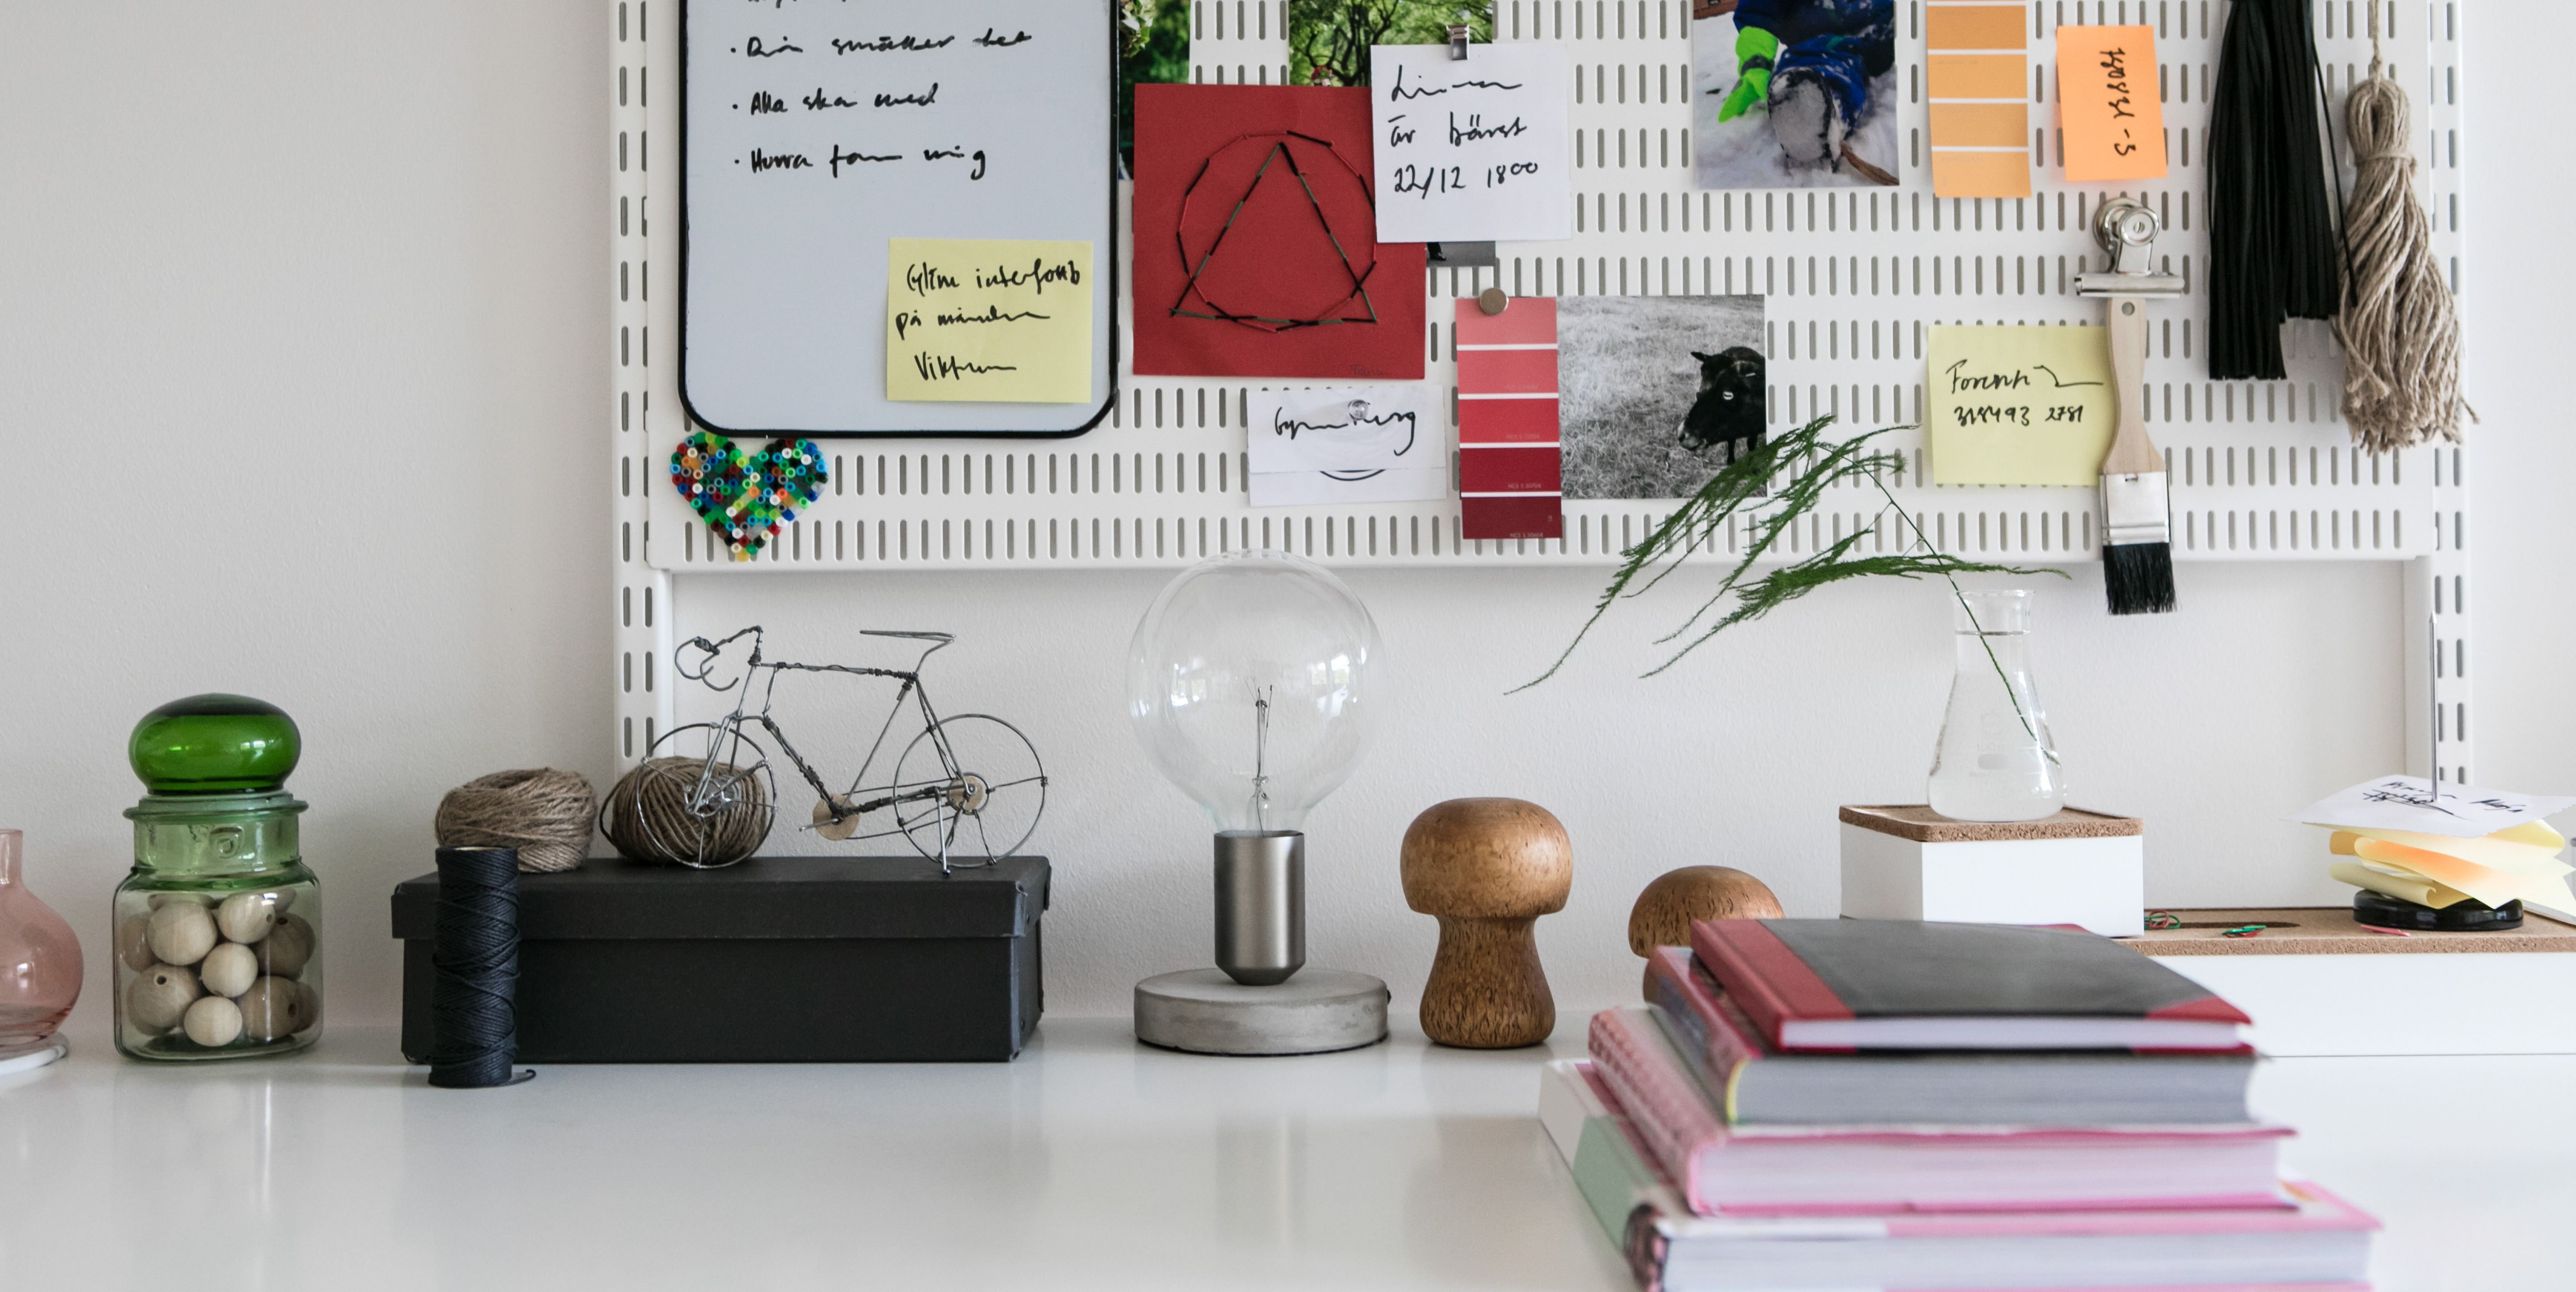 Reminders on pegboard in home office